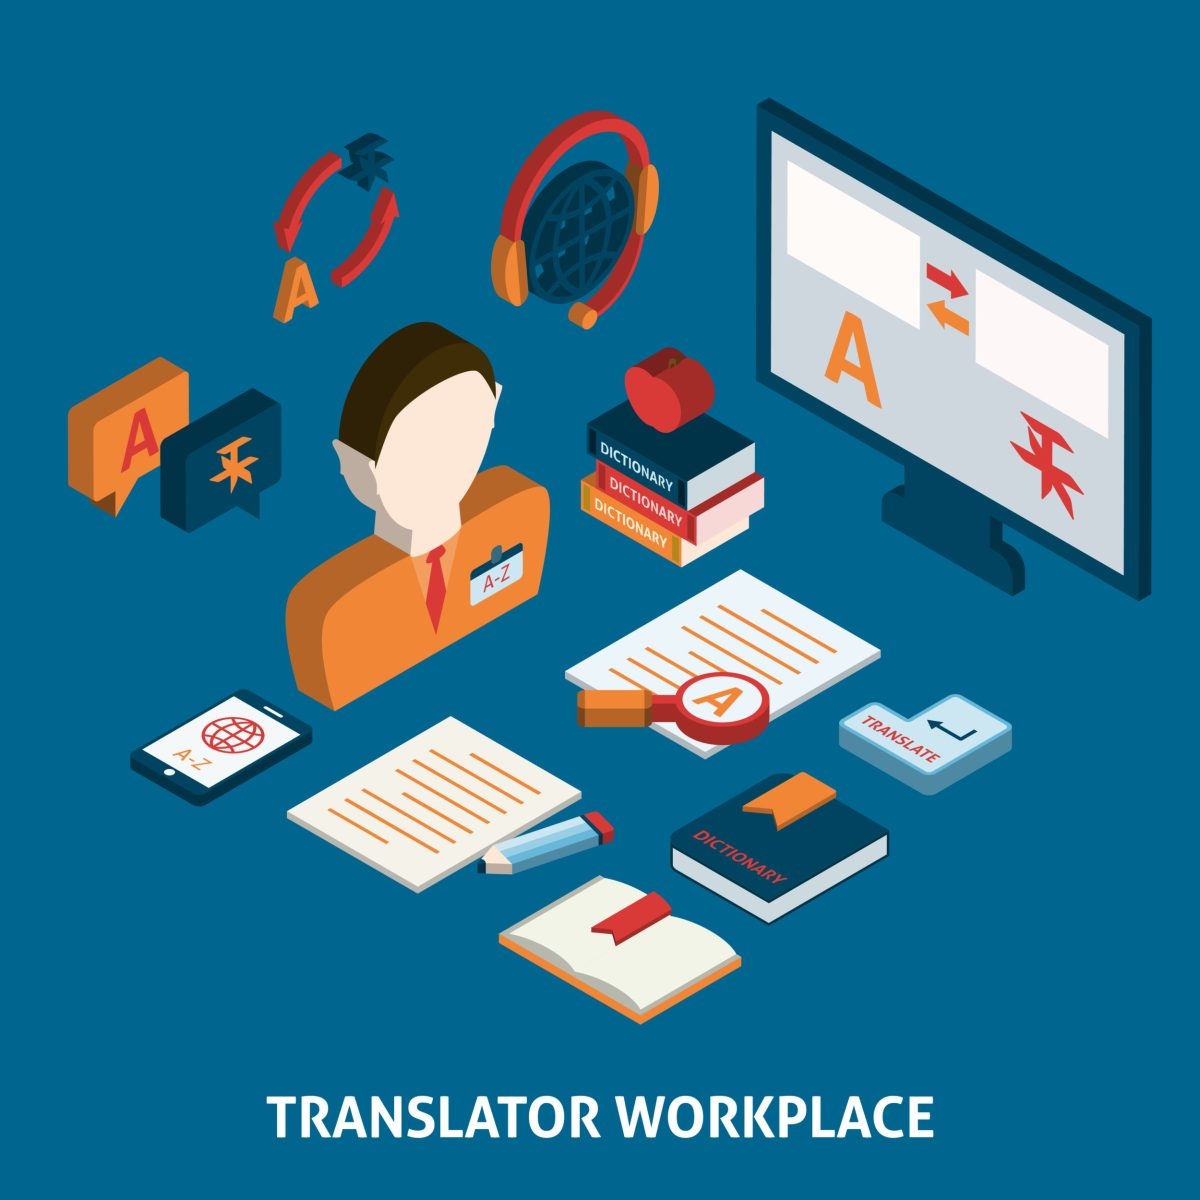 Real world translation and augmented reality